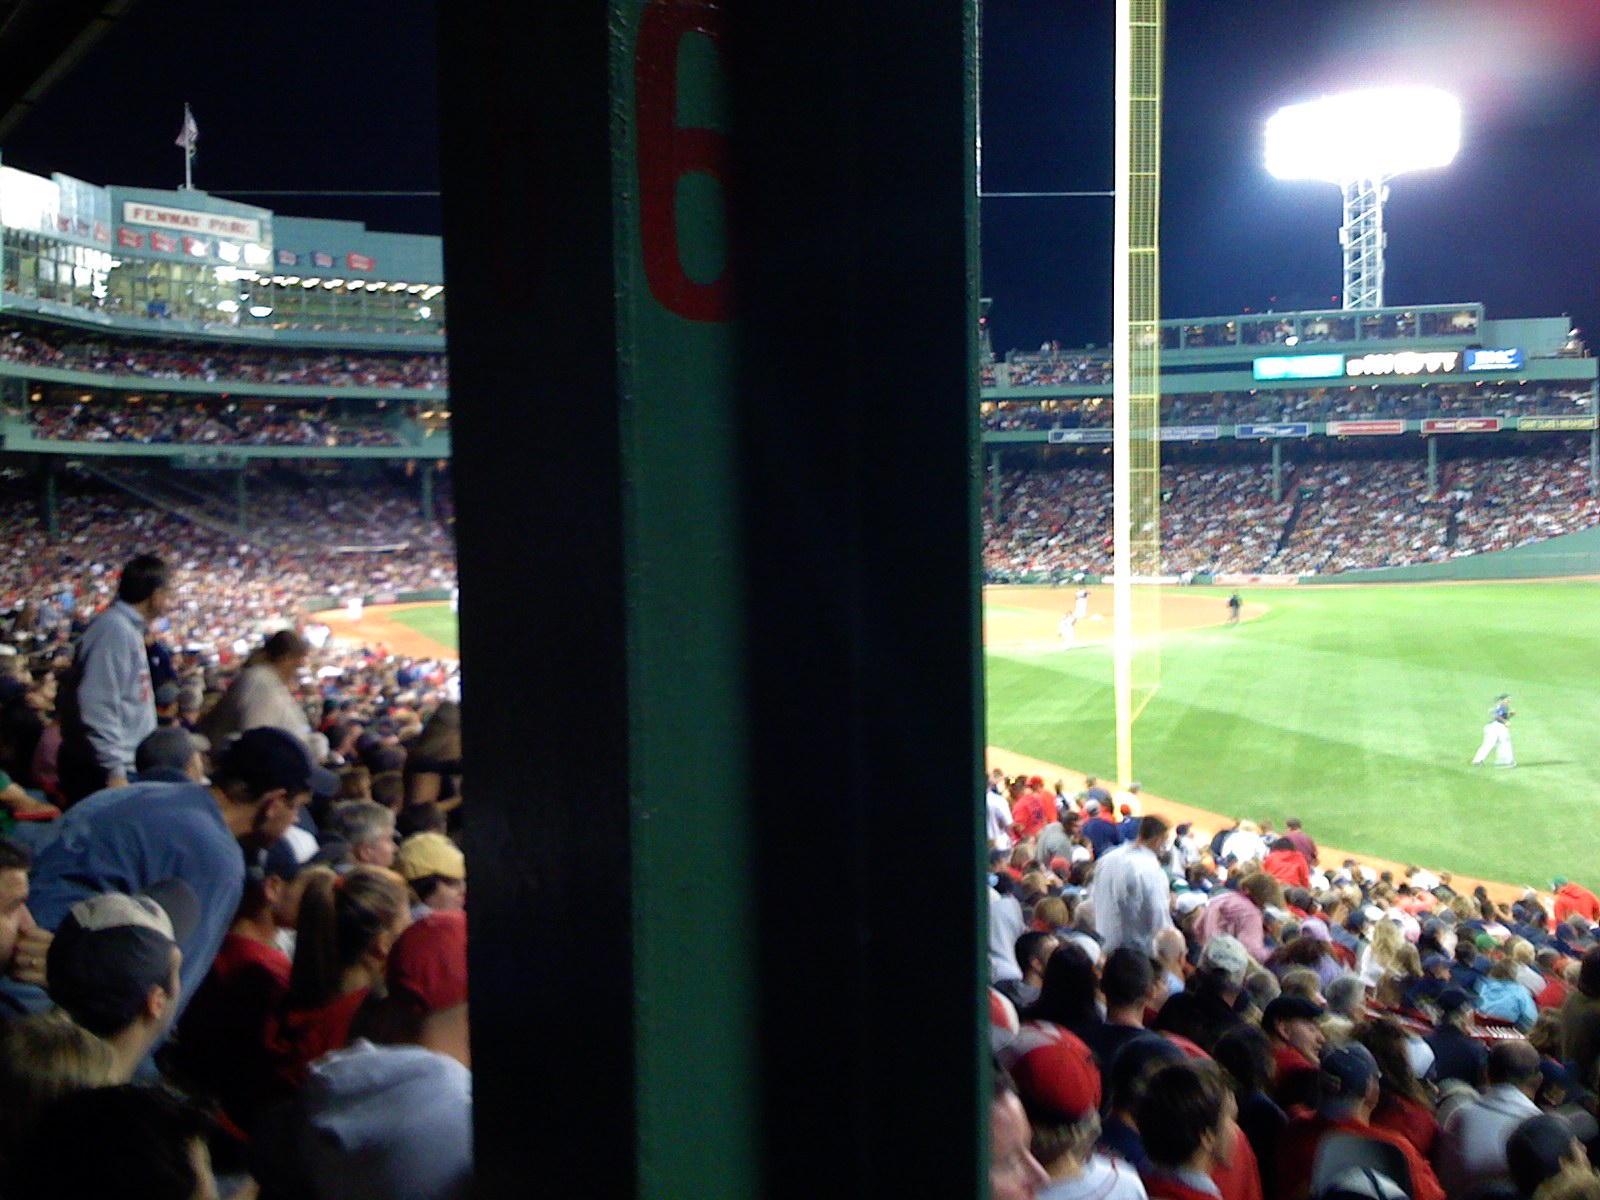 Red Sox Game 161 - The Pole